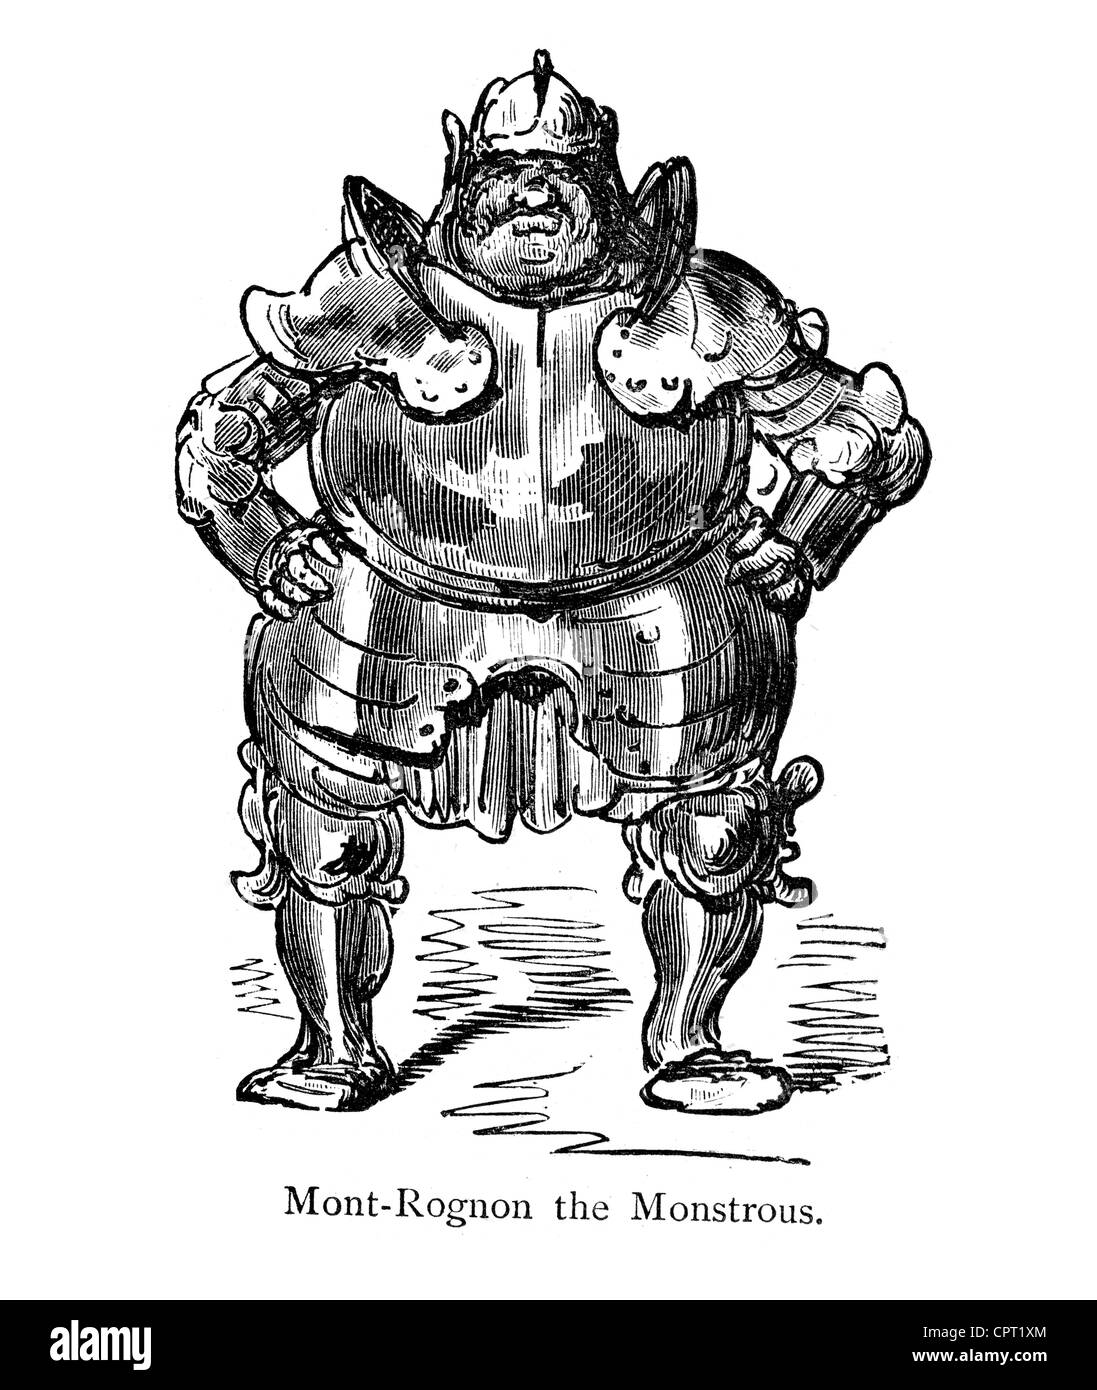 Mont Rognon the Monstrous. Illustration from the Legend of Croquemitaine by Gustave Doré - Stock Image